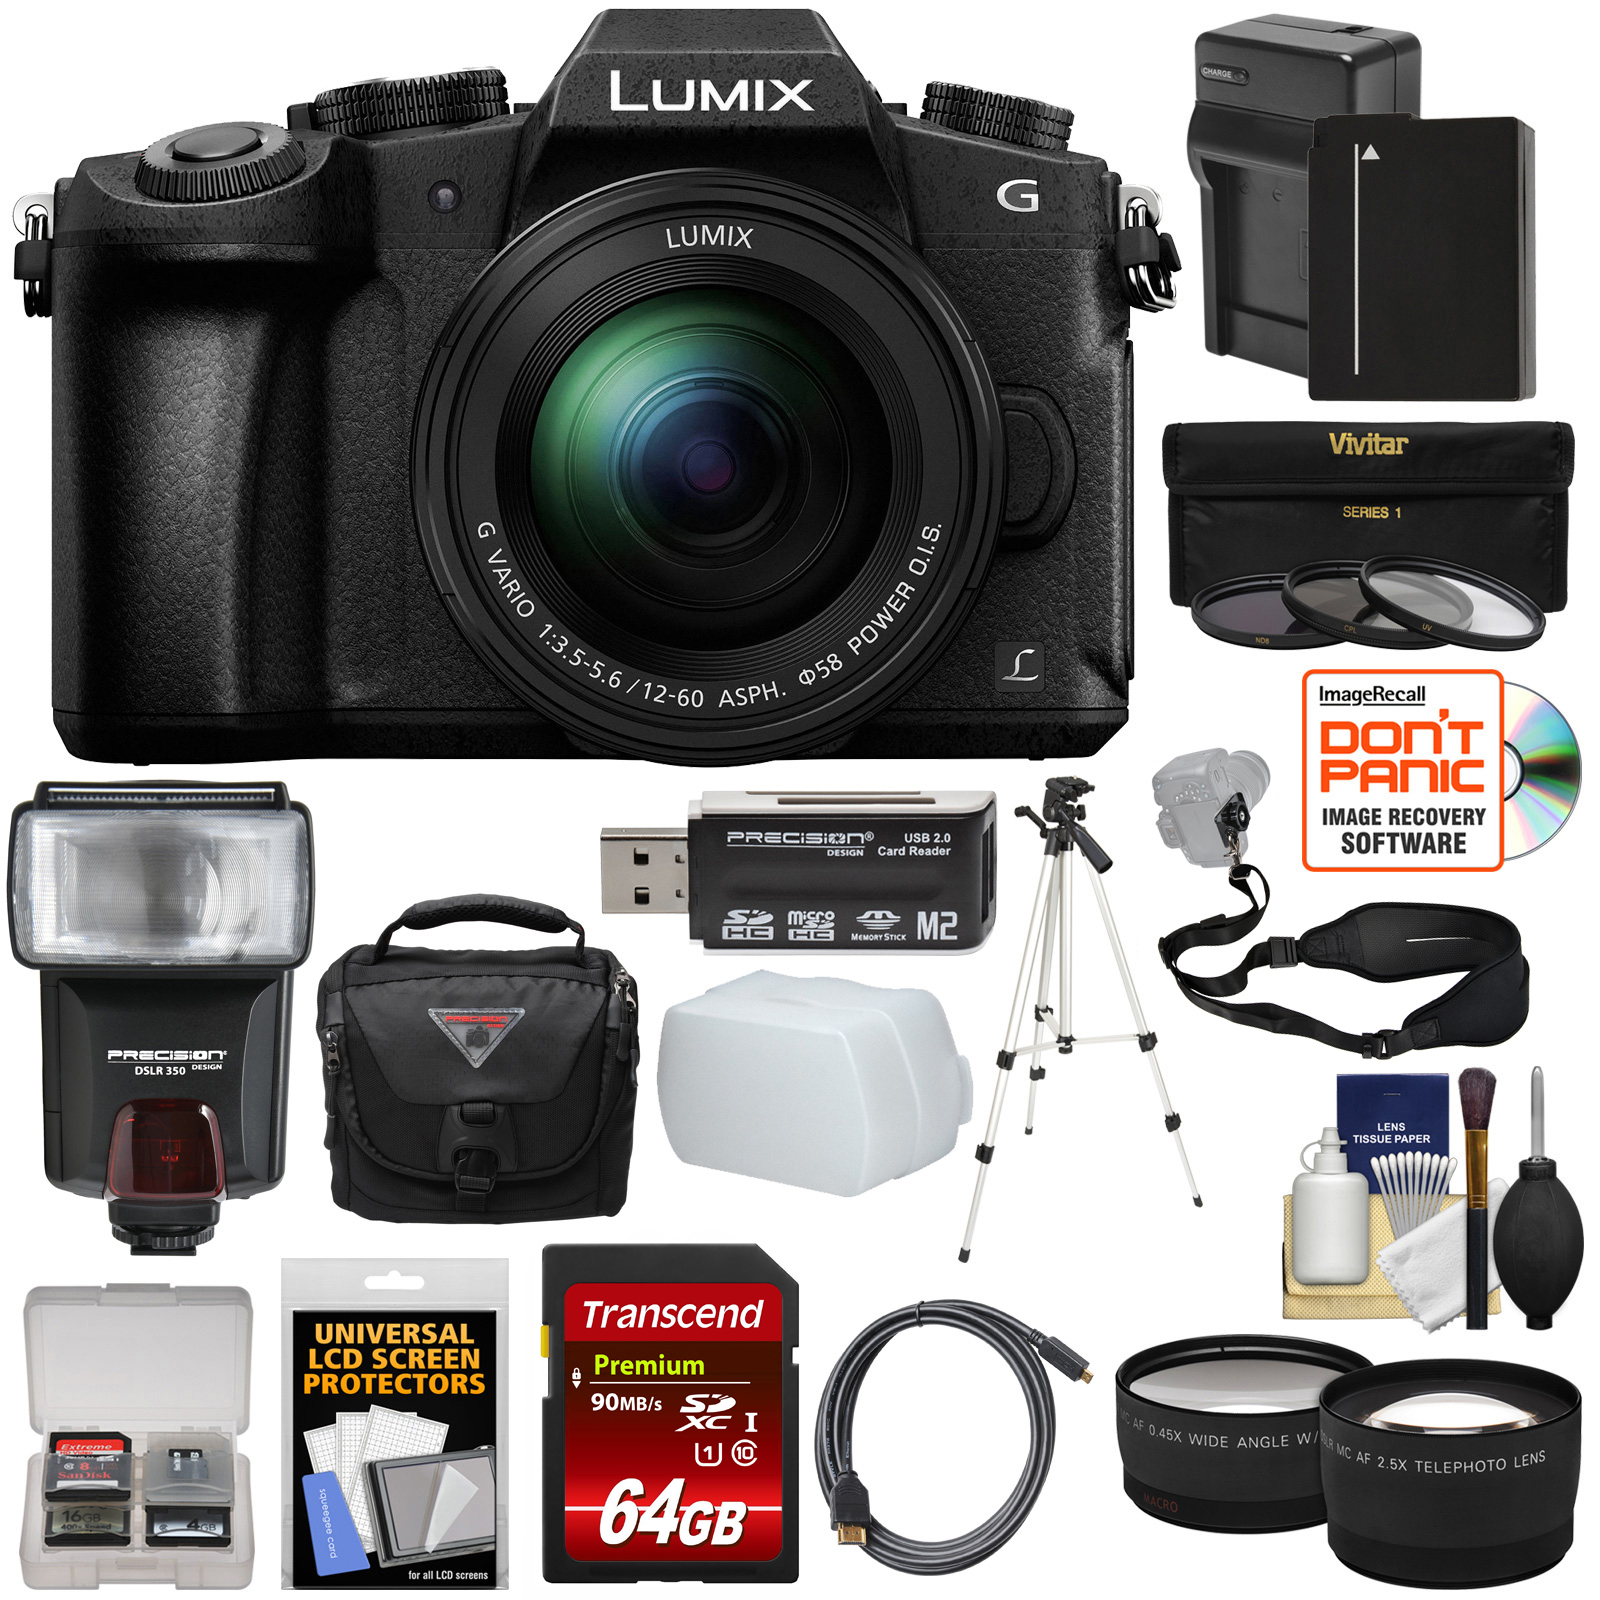 Panasonic Lumix DMC-G85 4K Wi-Fi Digital Camera + 12-60mm Lens with 64GB Card + Battery + Case + Tripod + Flash + Sling Strap + Tele + Wide Lens Kit